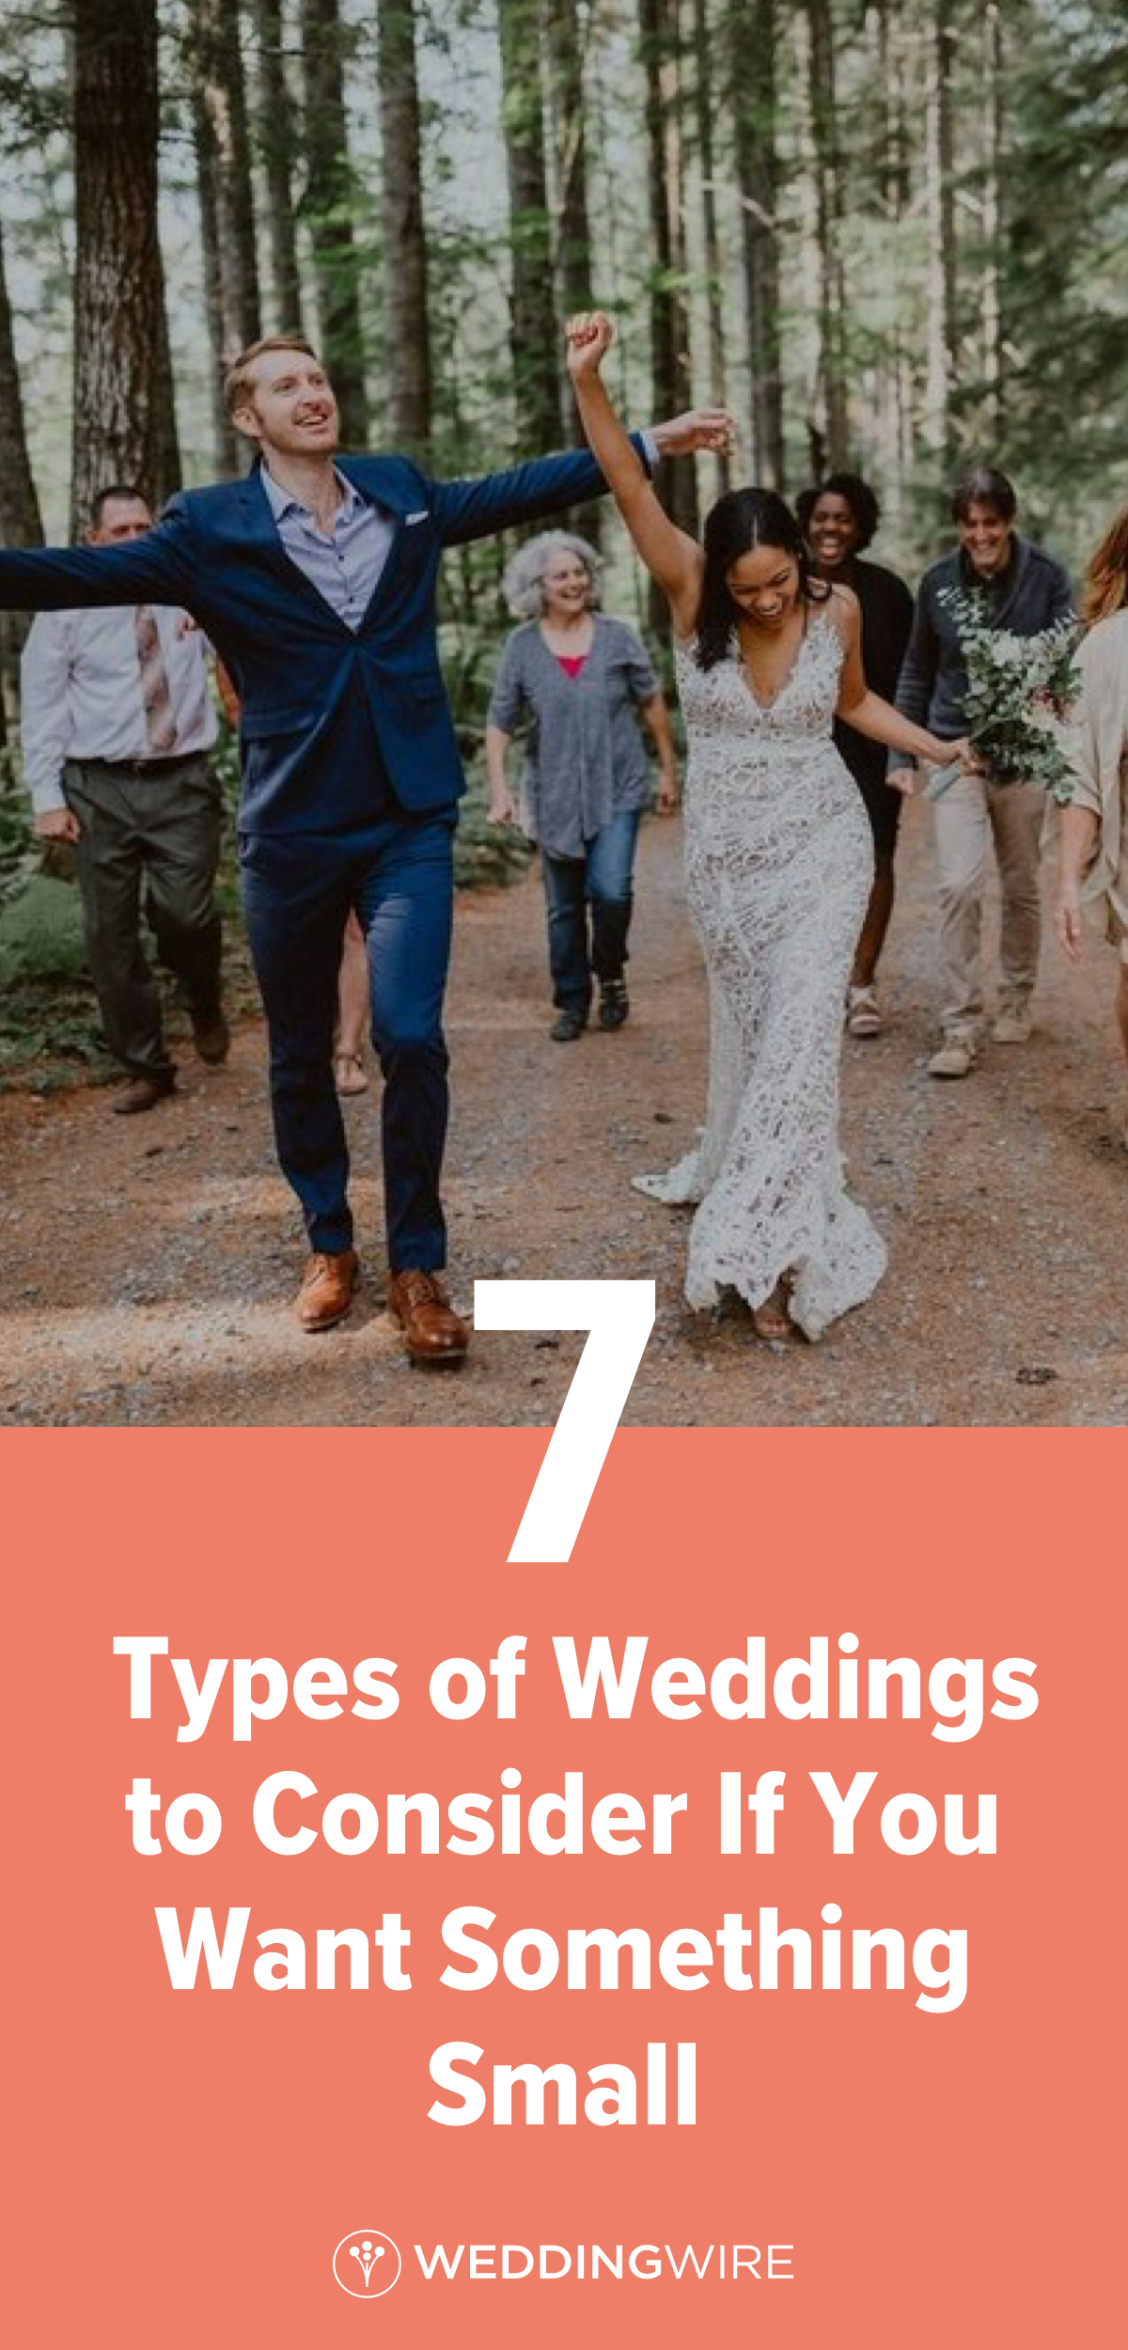 7 Types of Weddings to Consider If You Want Something